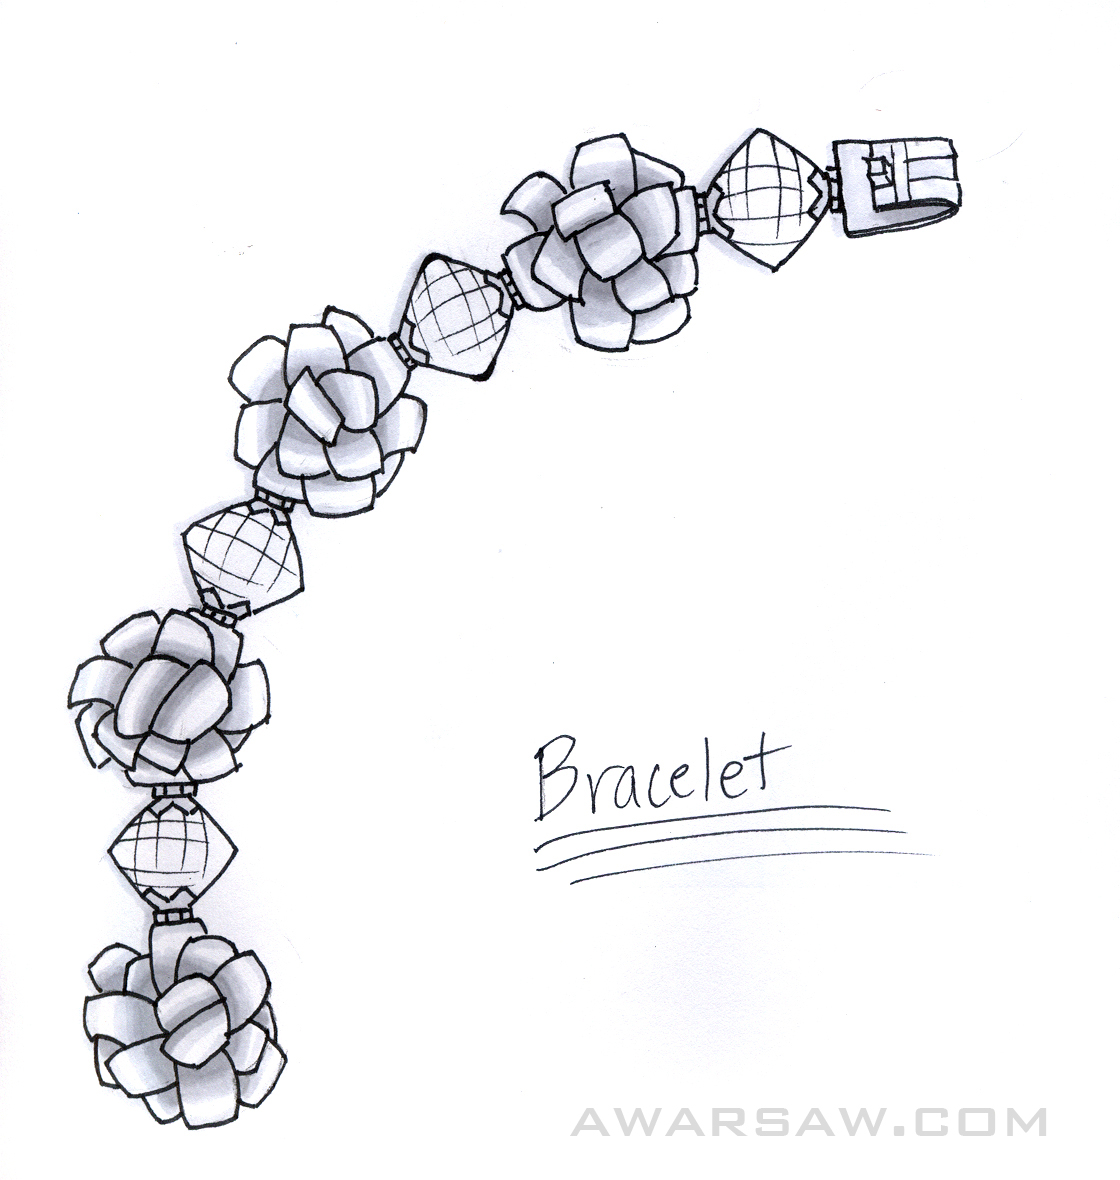 Jewelry Sketches & Renders by Ashley Warsaw at Coroflot.com